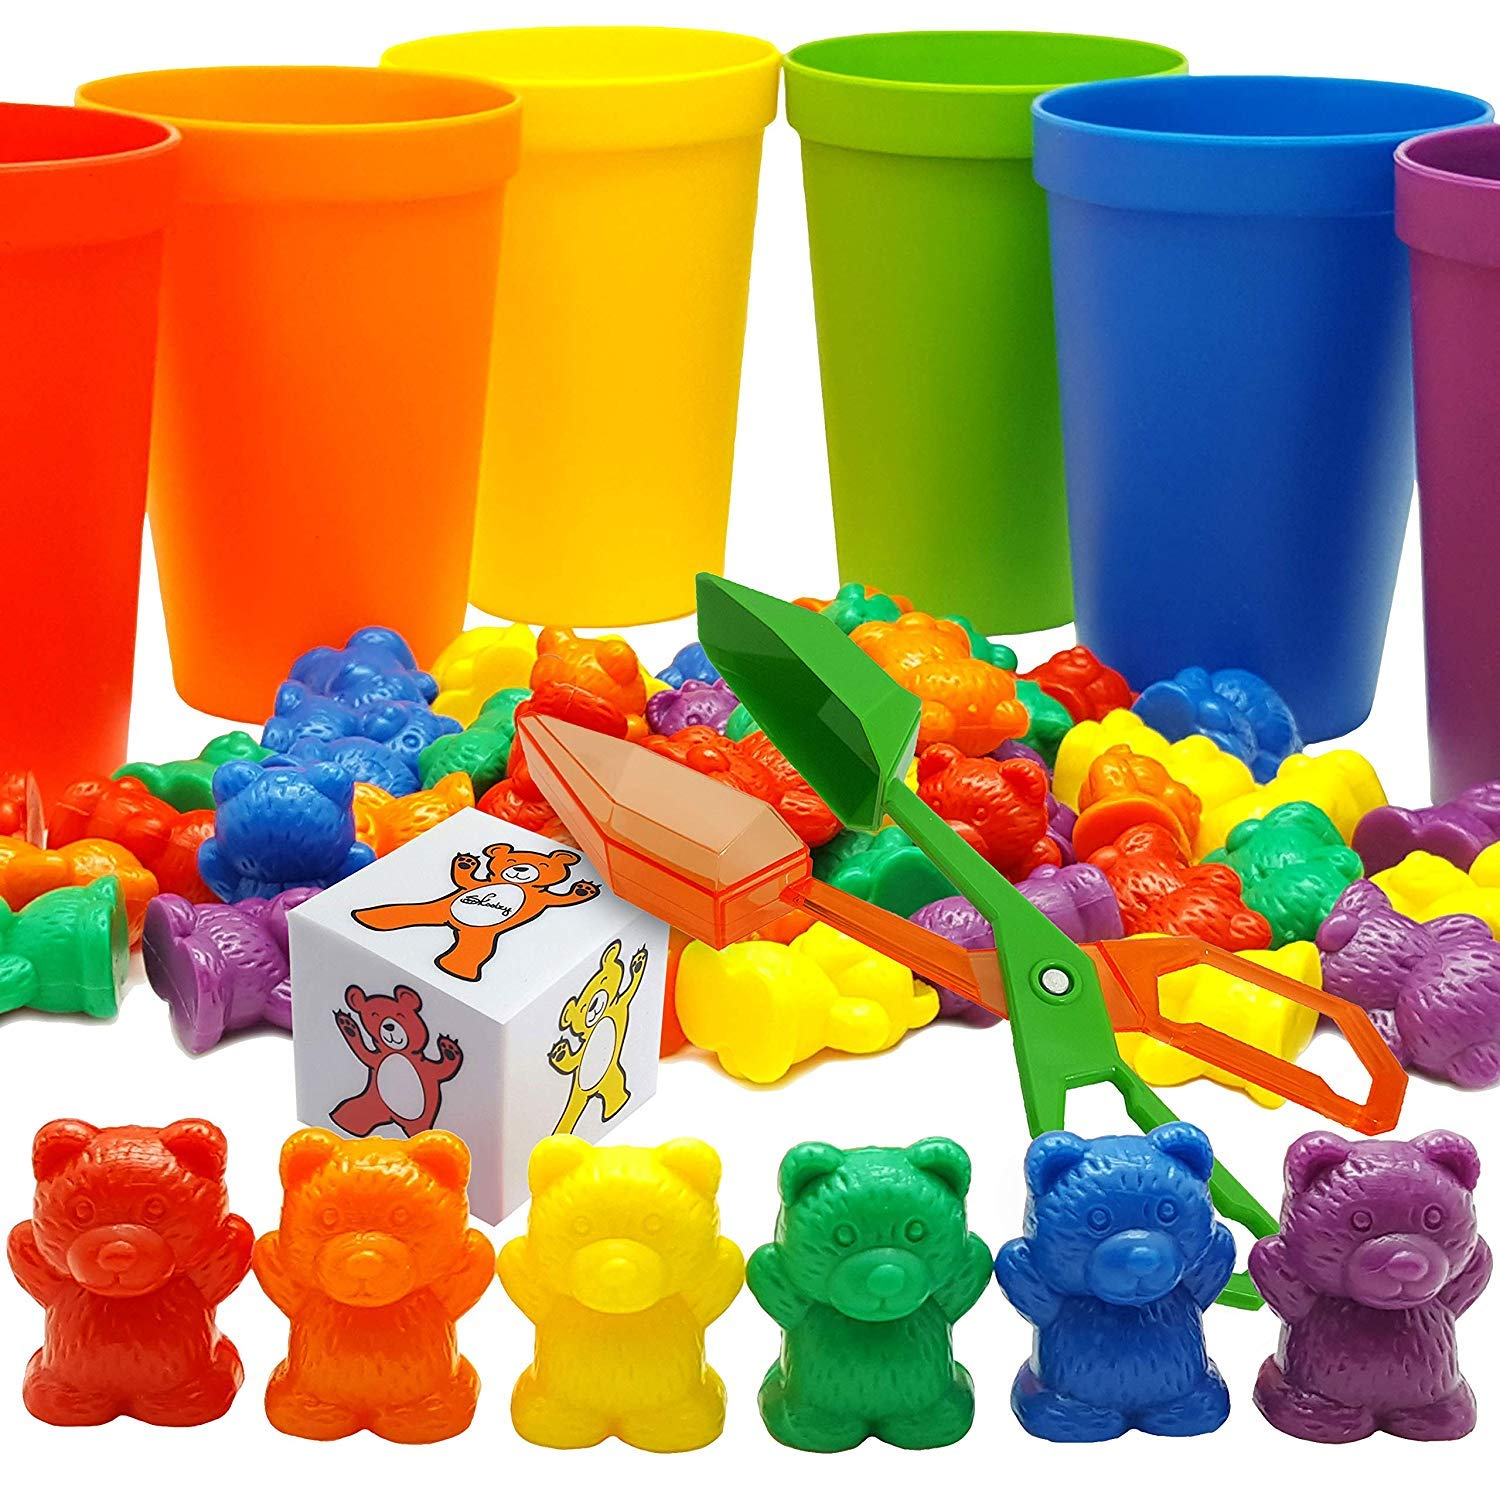 Skoolzy Rainbow Counting Bears with Matching Sorting Cups, Bear Counters and Dice Math Toddler Games 70pc Set - Bonus Scoop Tongs by Skoolzy